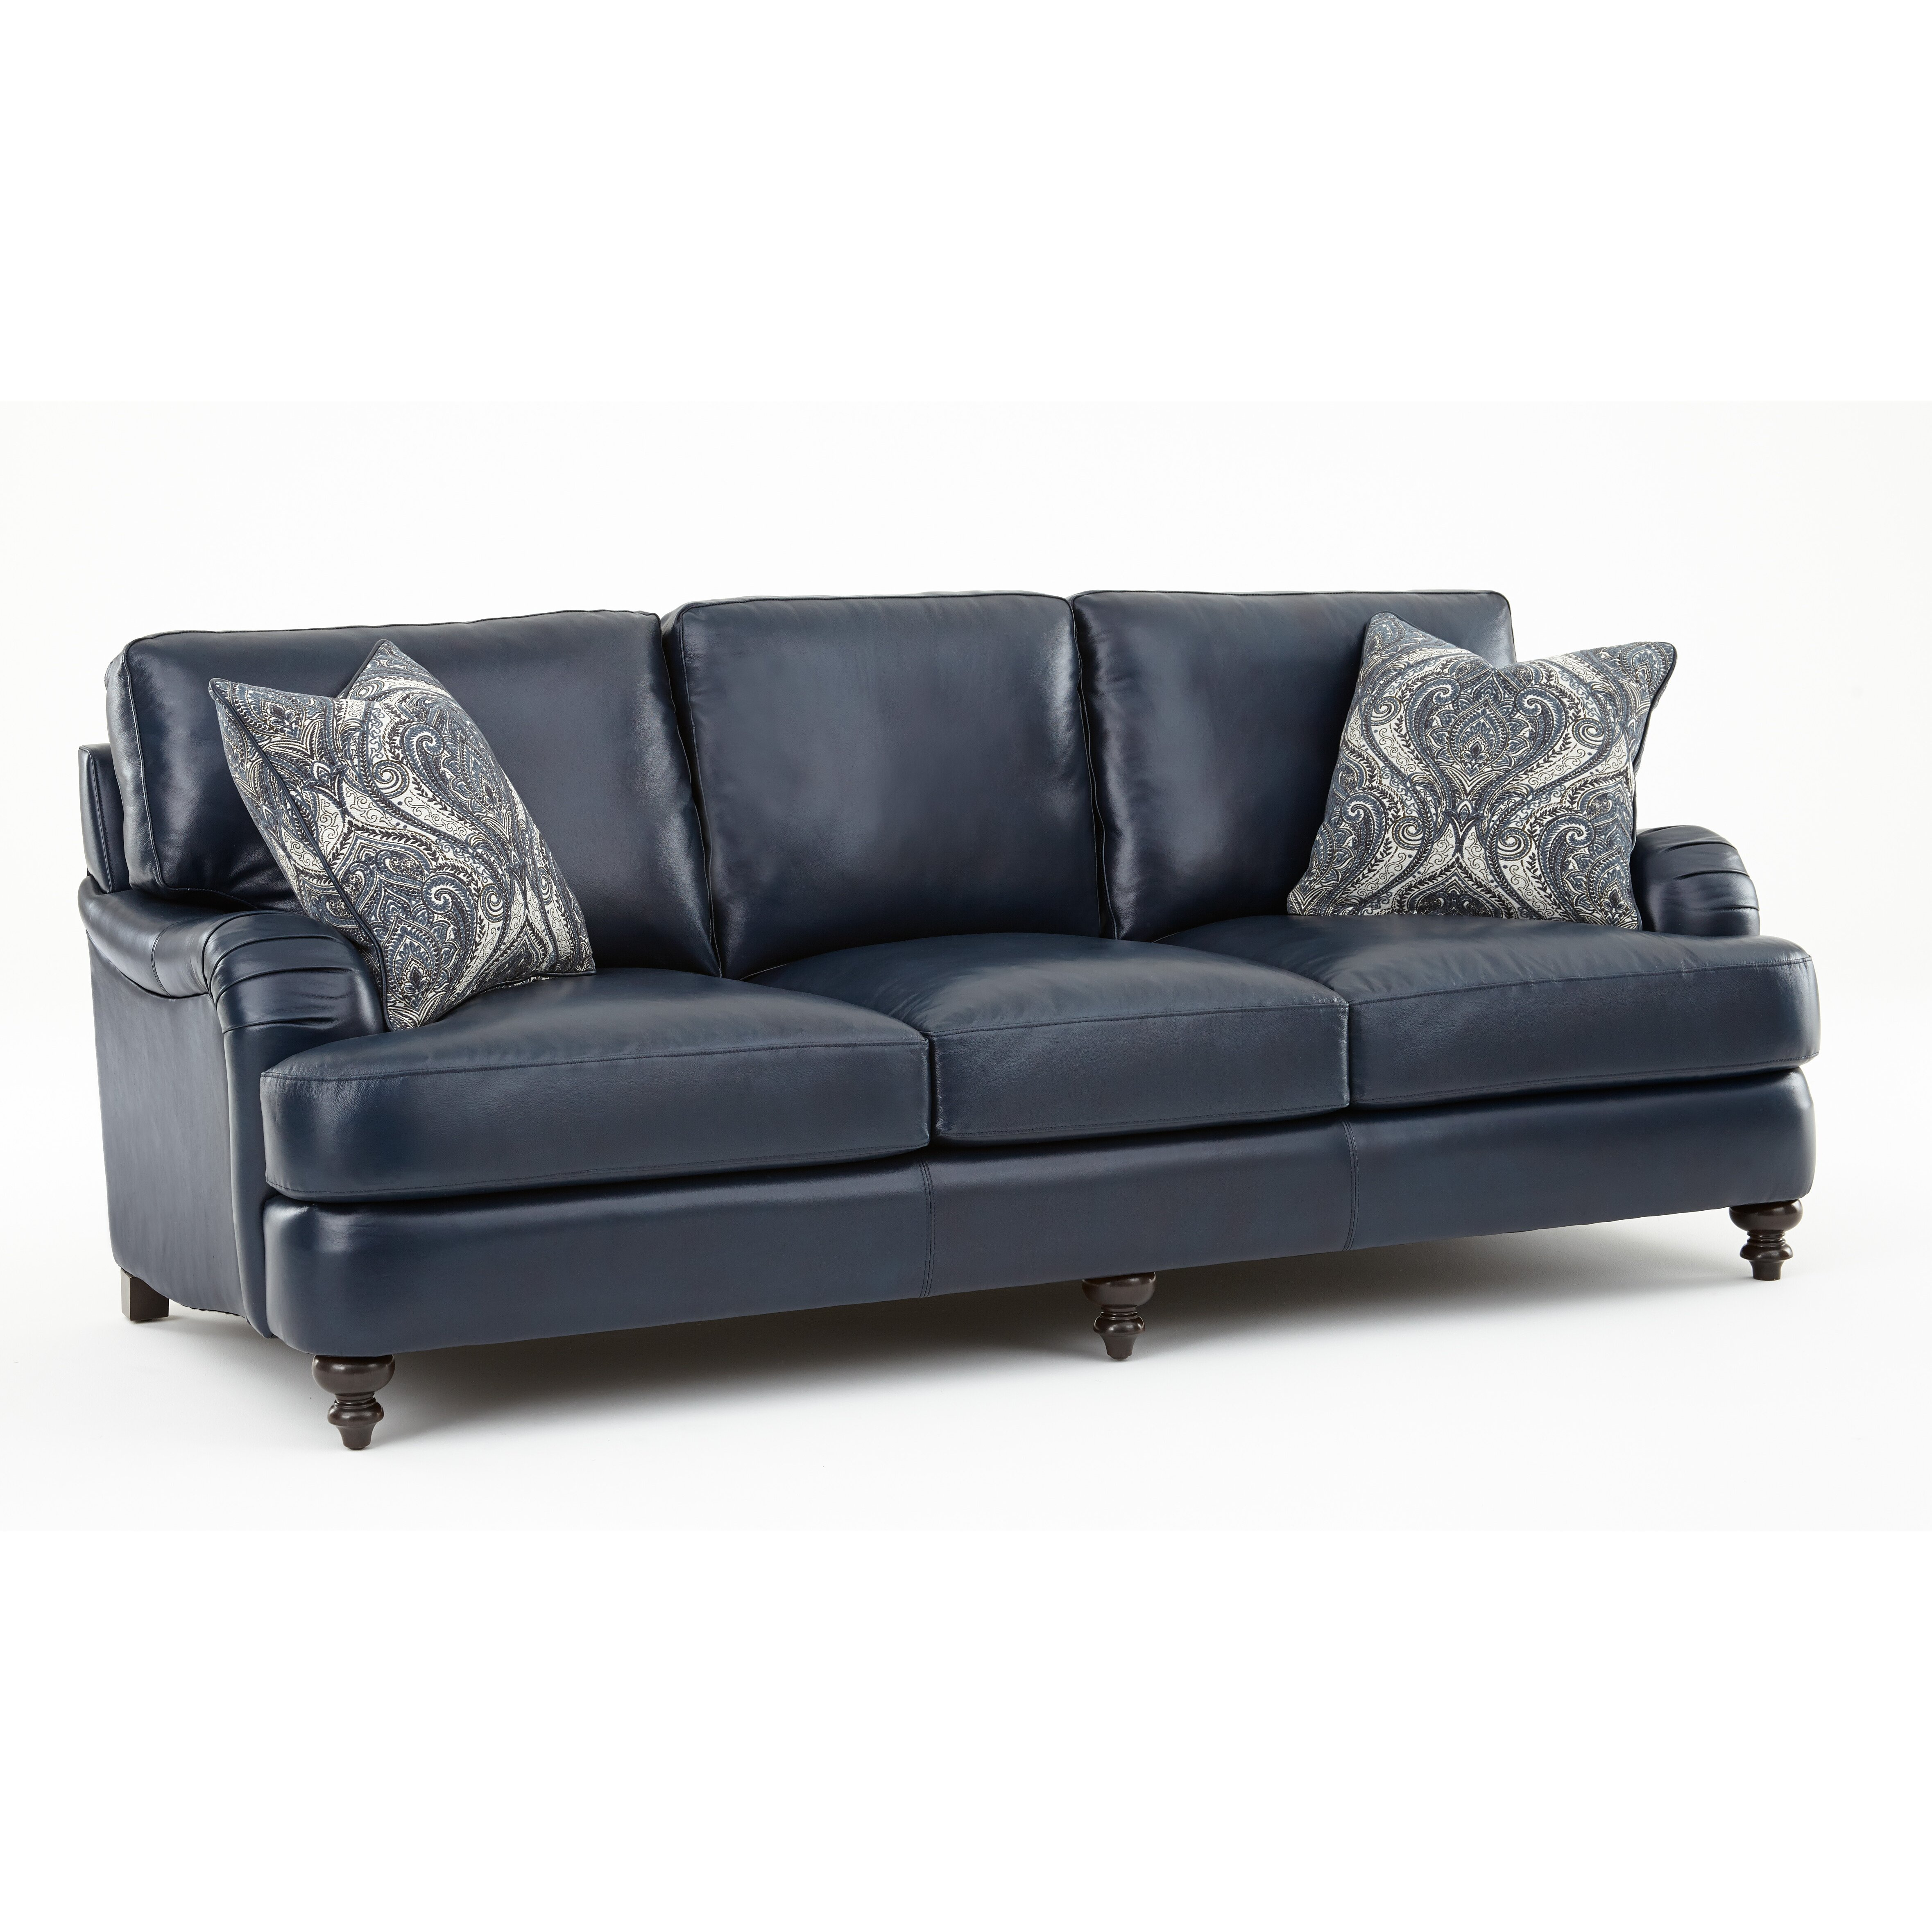 Average Cost To Reupholster A Leather Sofa Codeminimalist Net